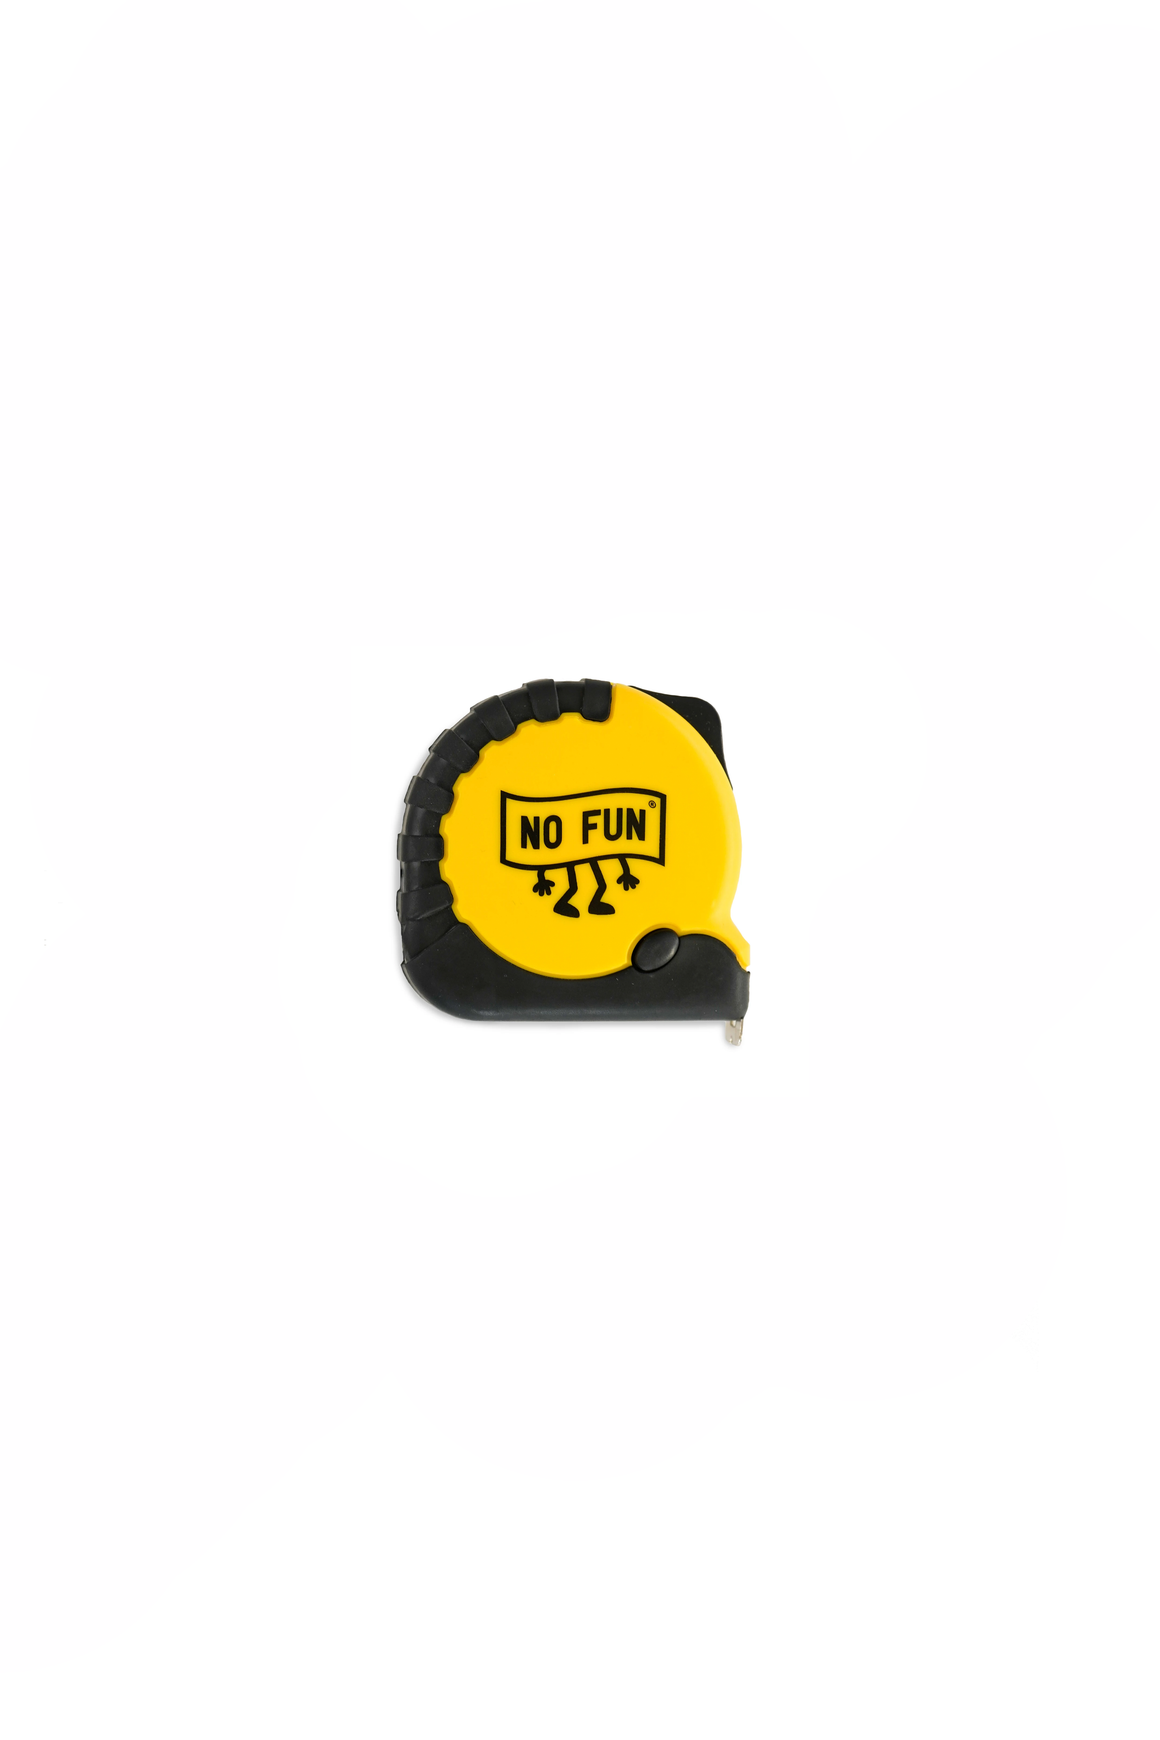 Studio Pro Tape Measure